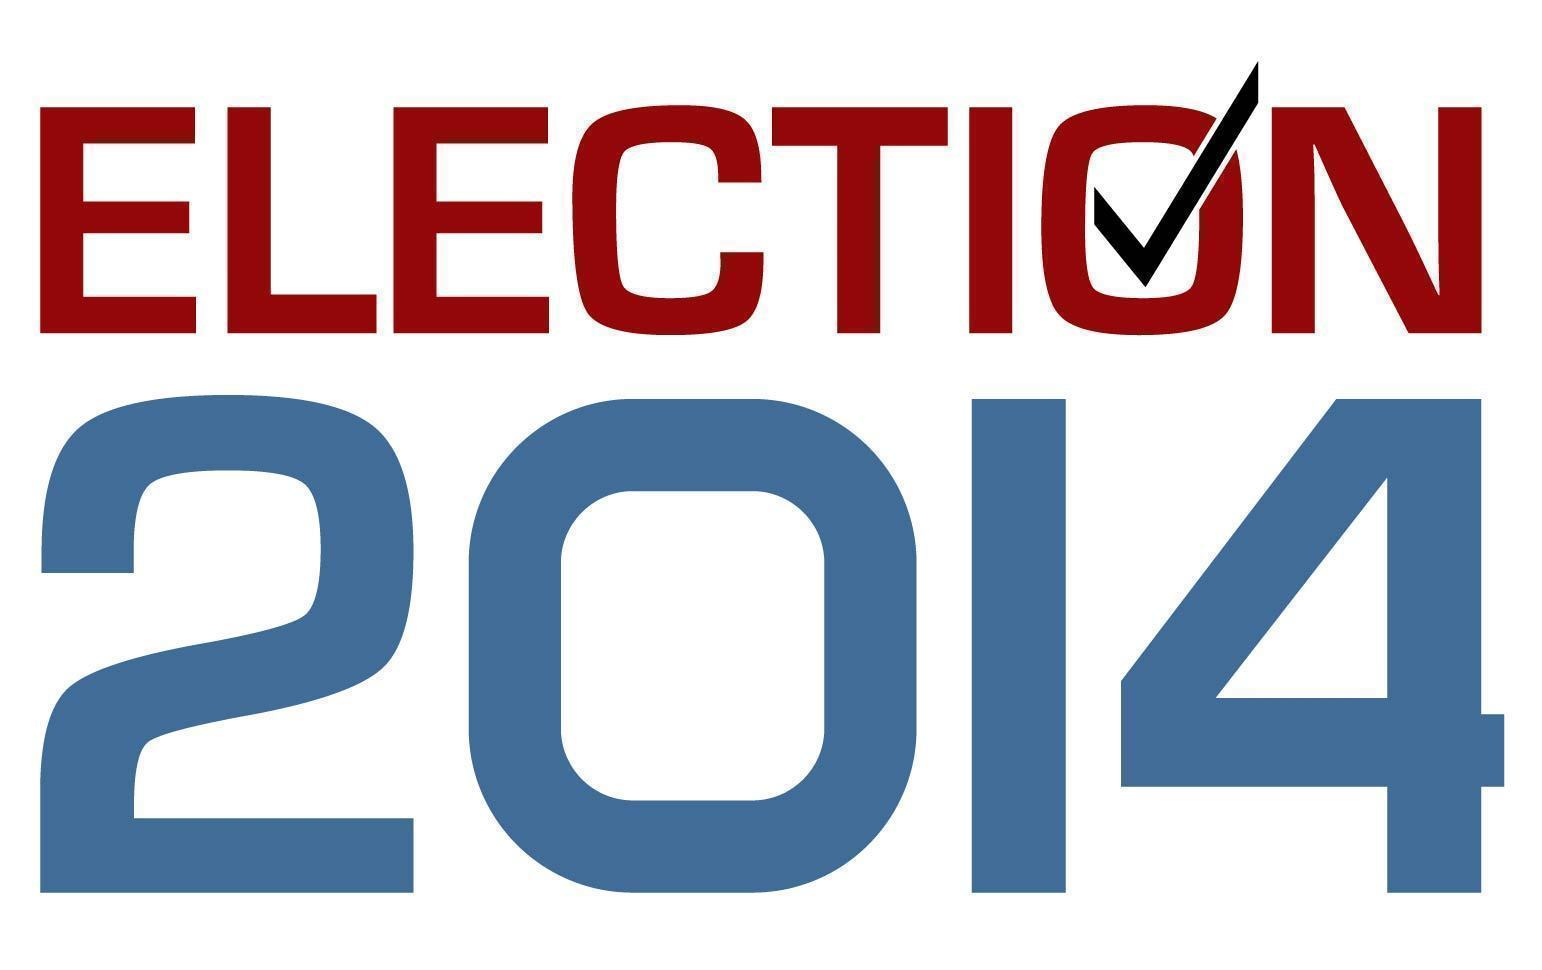 Election Day 2014 Clipart - Clipart Kid